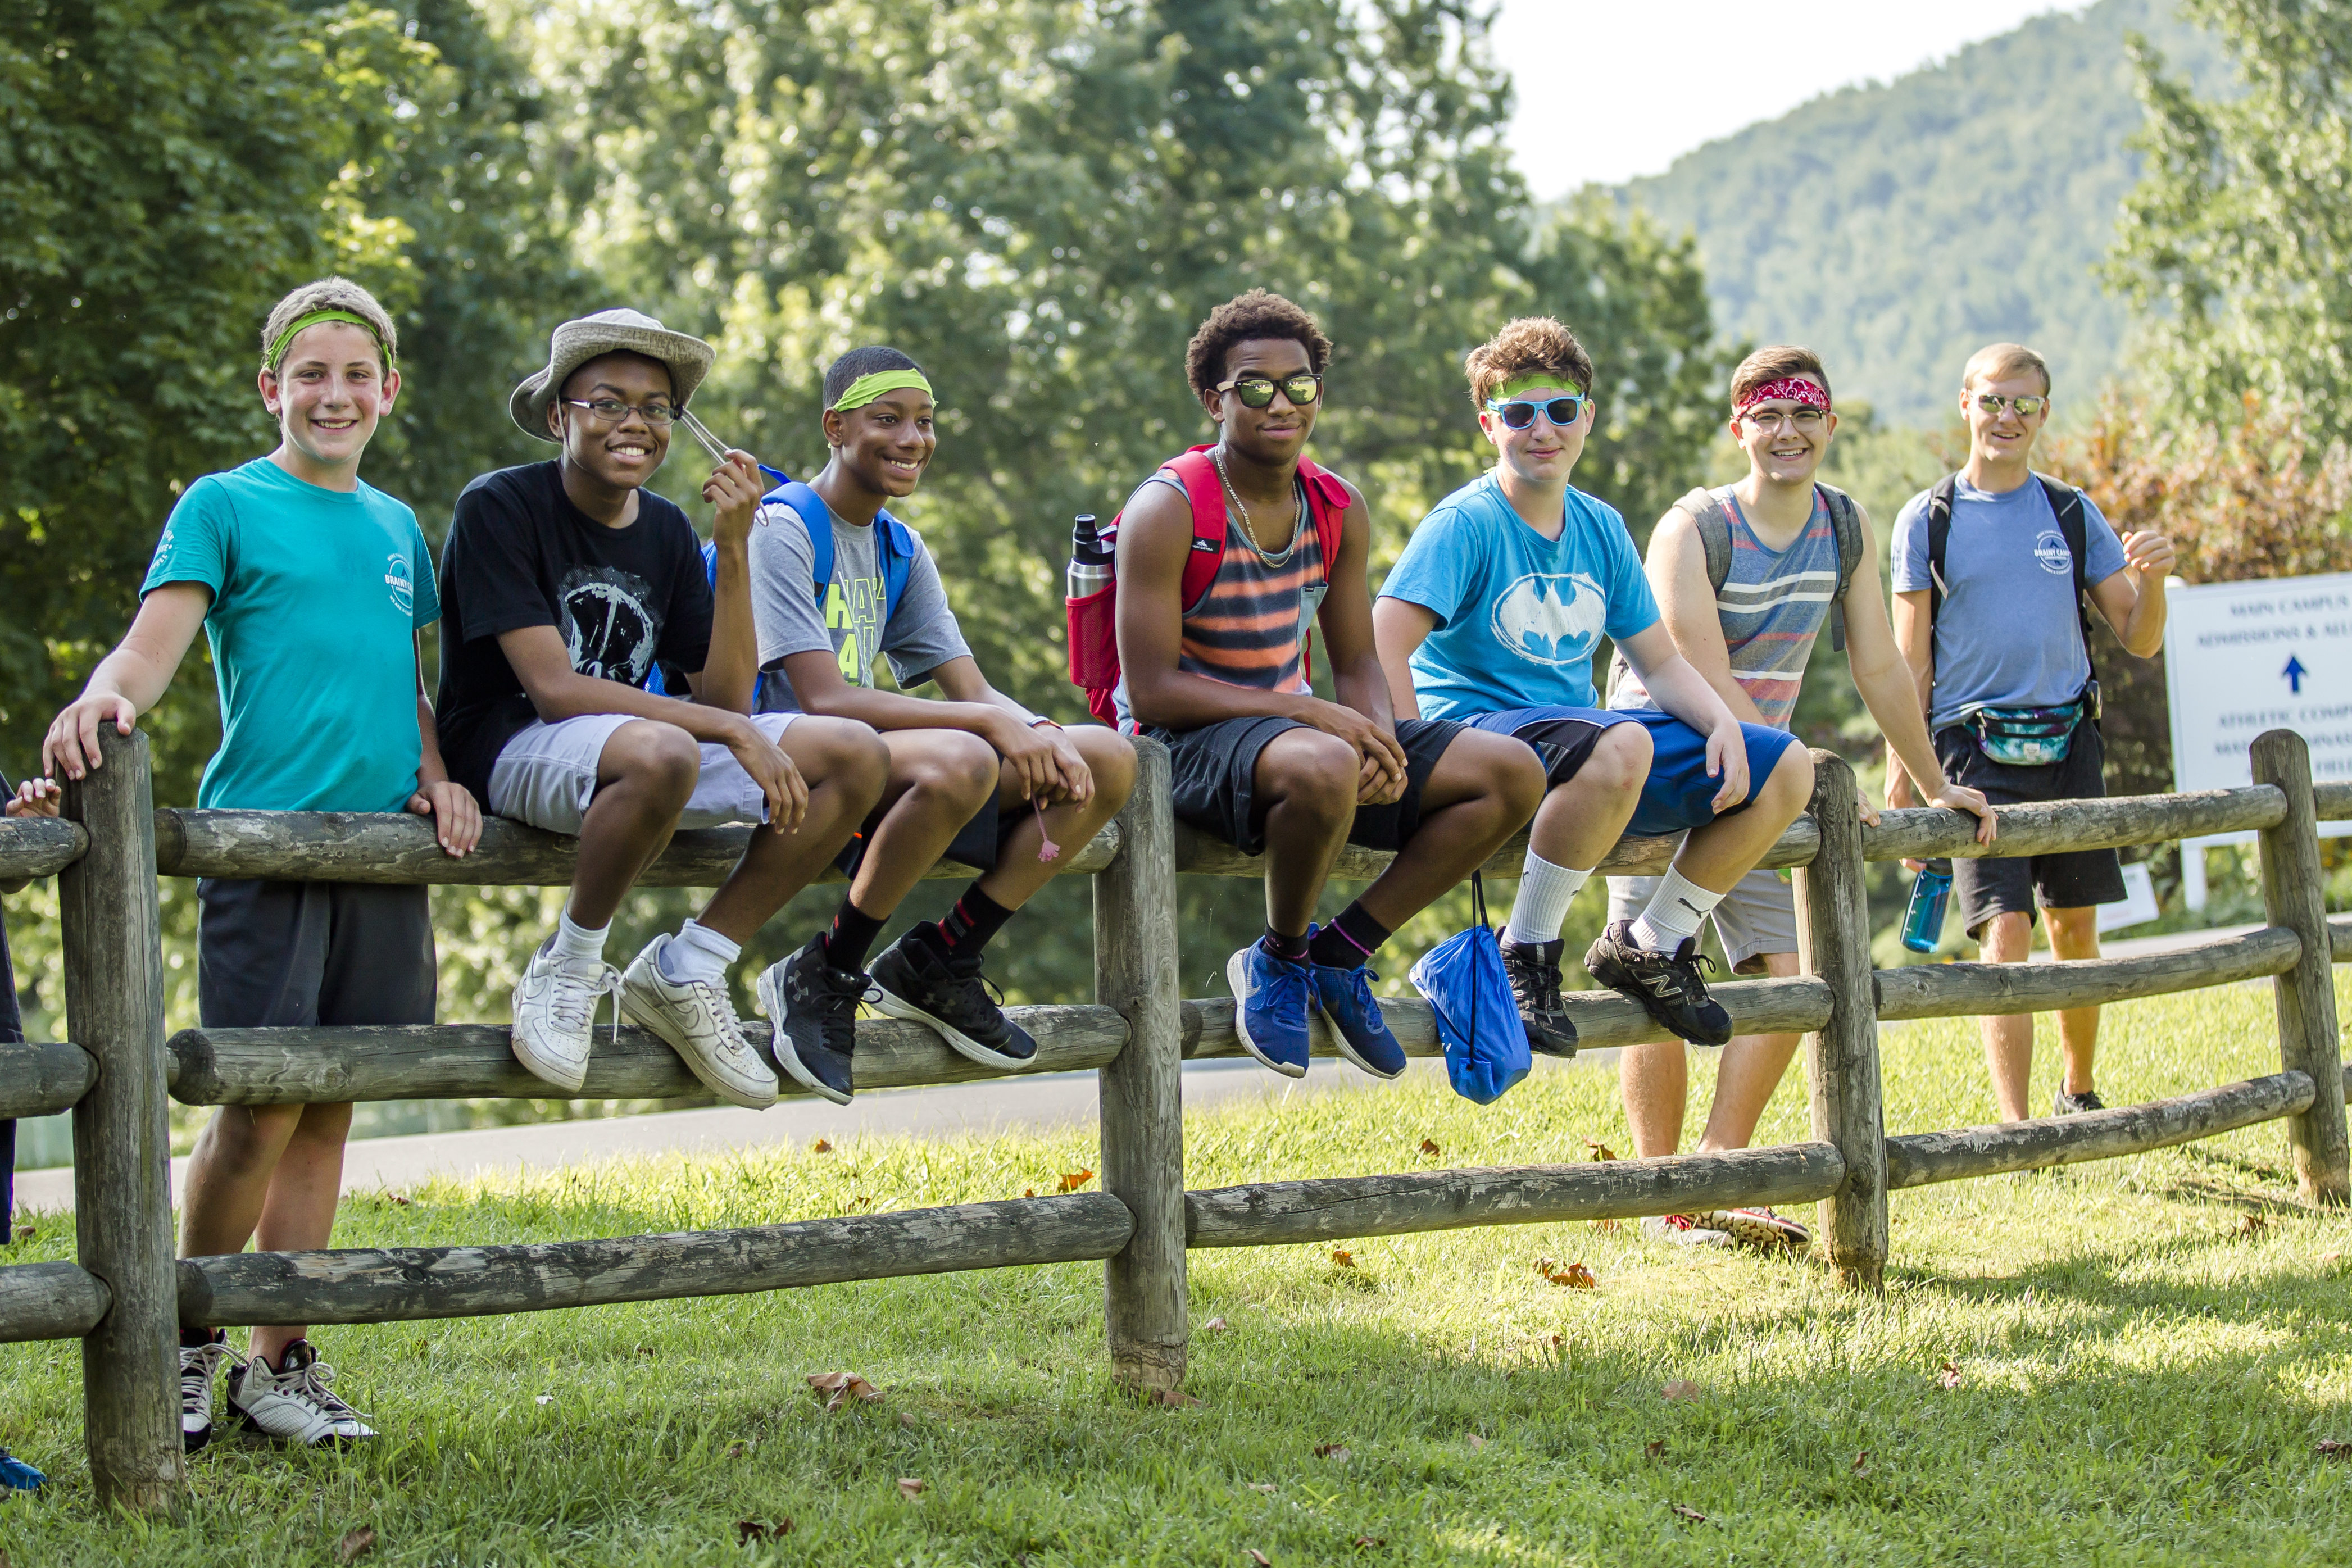 Campers sit on a fence, smiling, and pose for a photo.